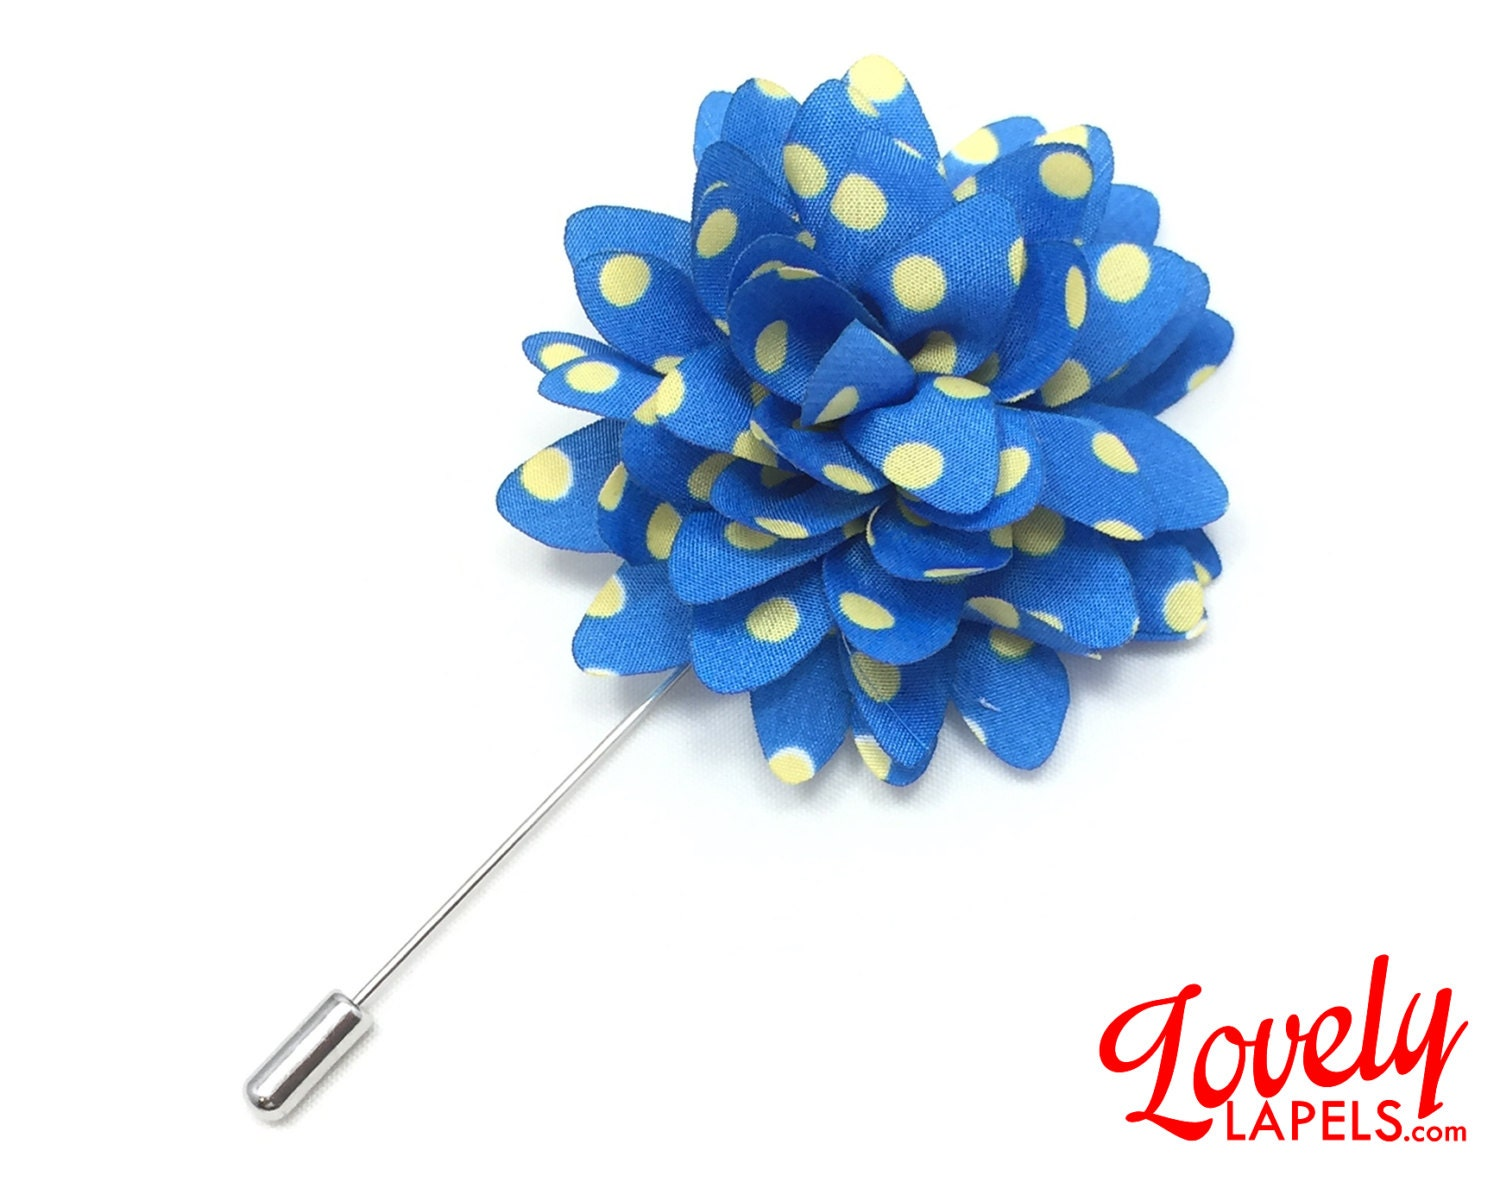 FLP1814 Flower Lapel Pin Blue with Yellow Dots by LovelyLapels